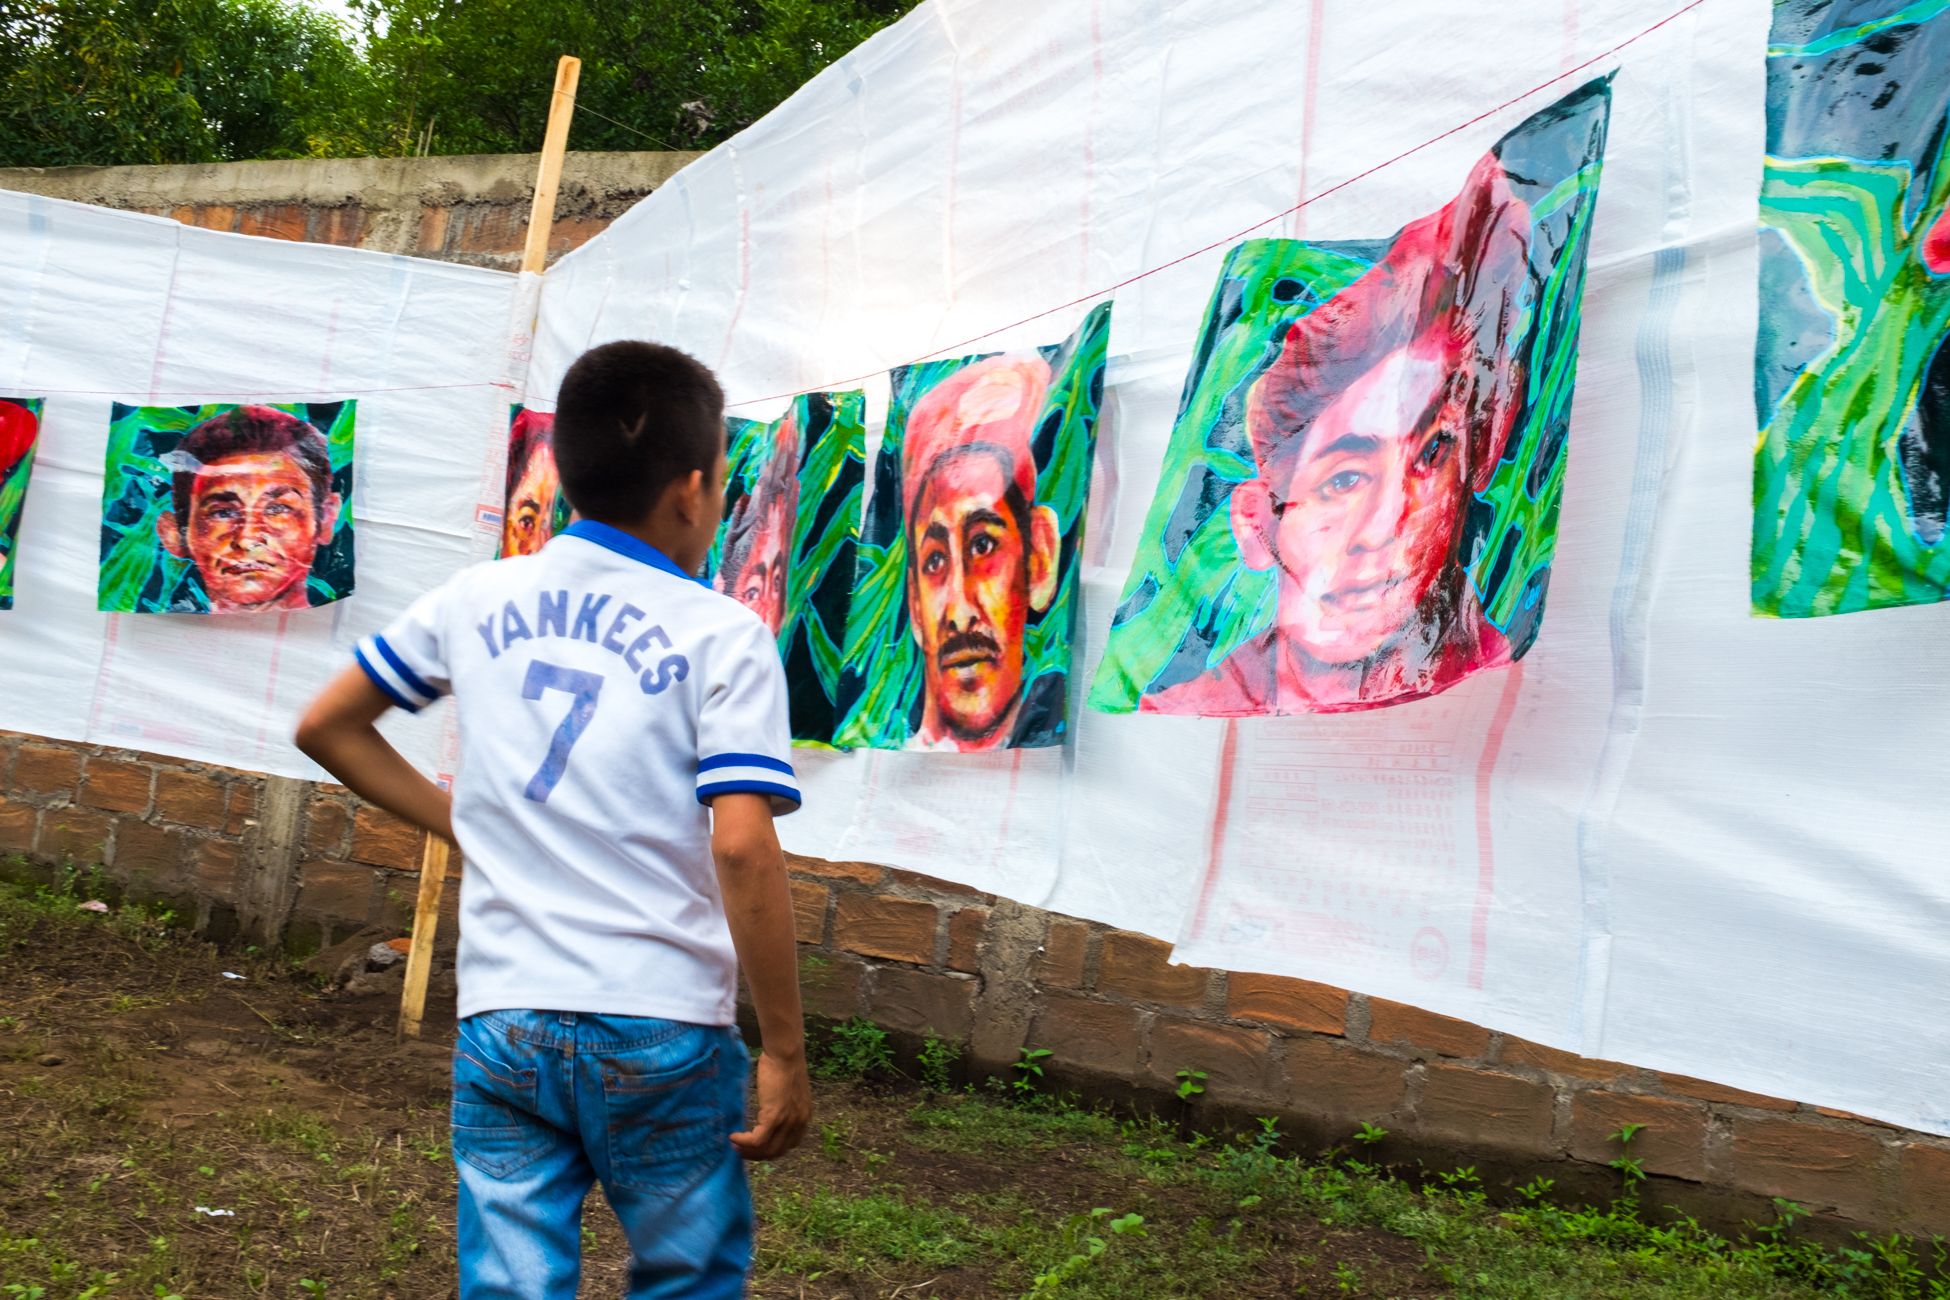 'Empalagoso (Saccharine): The Chichigalpa Portrait Project, 23 Memorial Portraits Installation' (2016) Image courtesy of Tom Laffay.